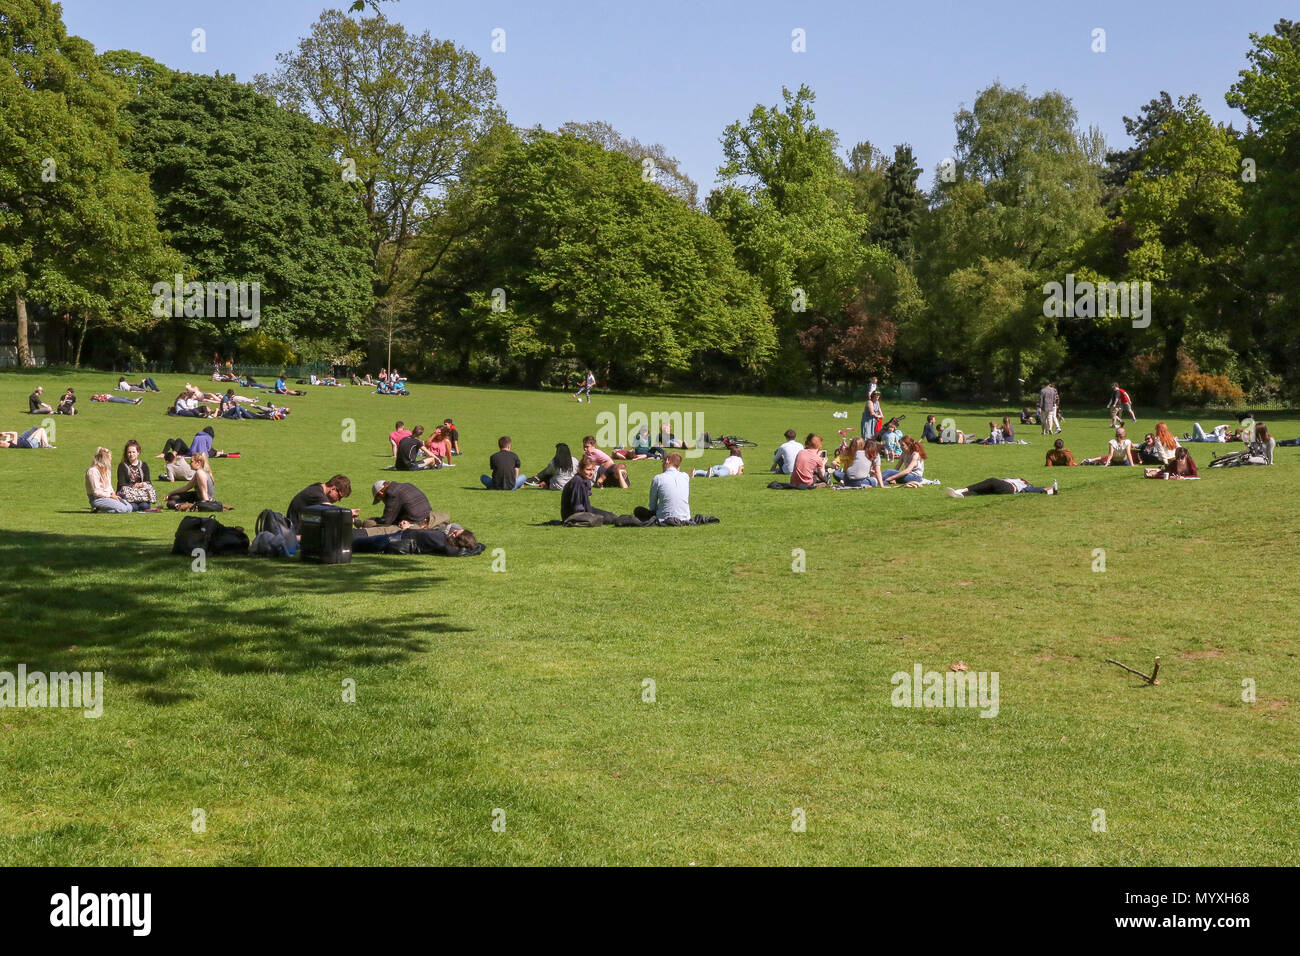 Young people and students sitting on the grass in a UK public park on a hot sunny day. Botanic Gardens Belfast Northern Ireland. - Stock Image